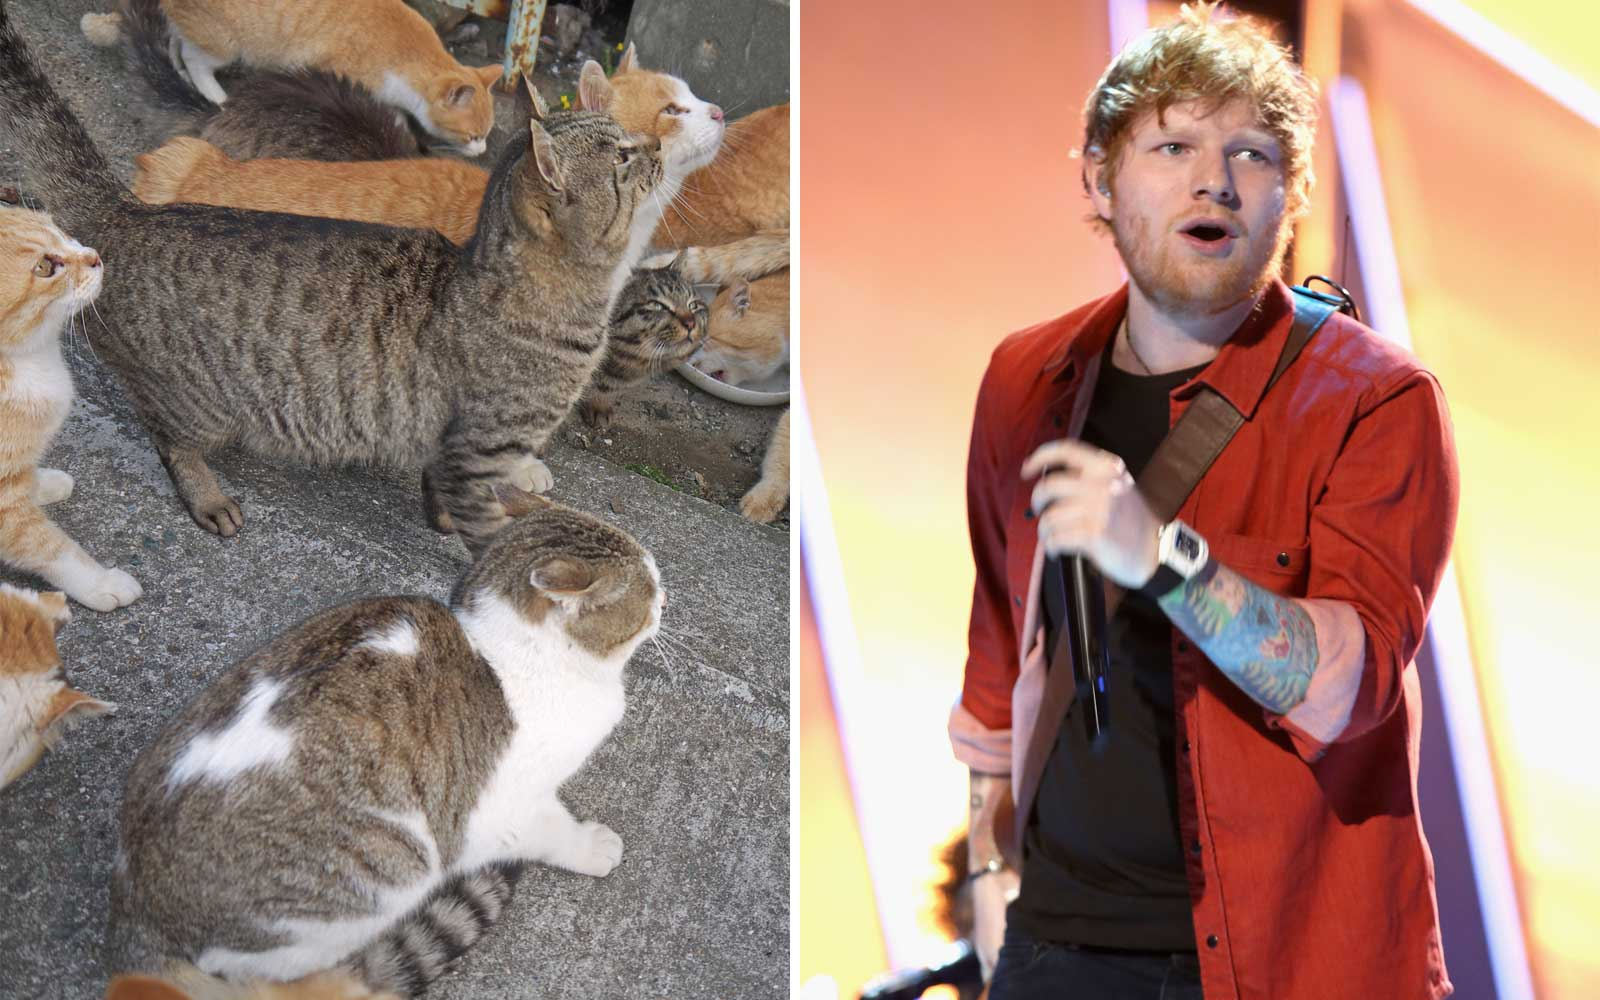 Ed Sheeran Asked to go to Cat Island